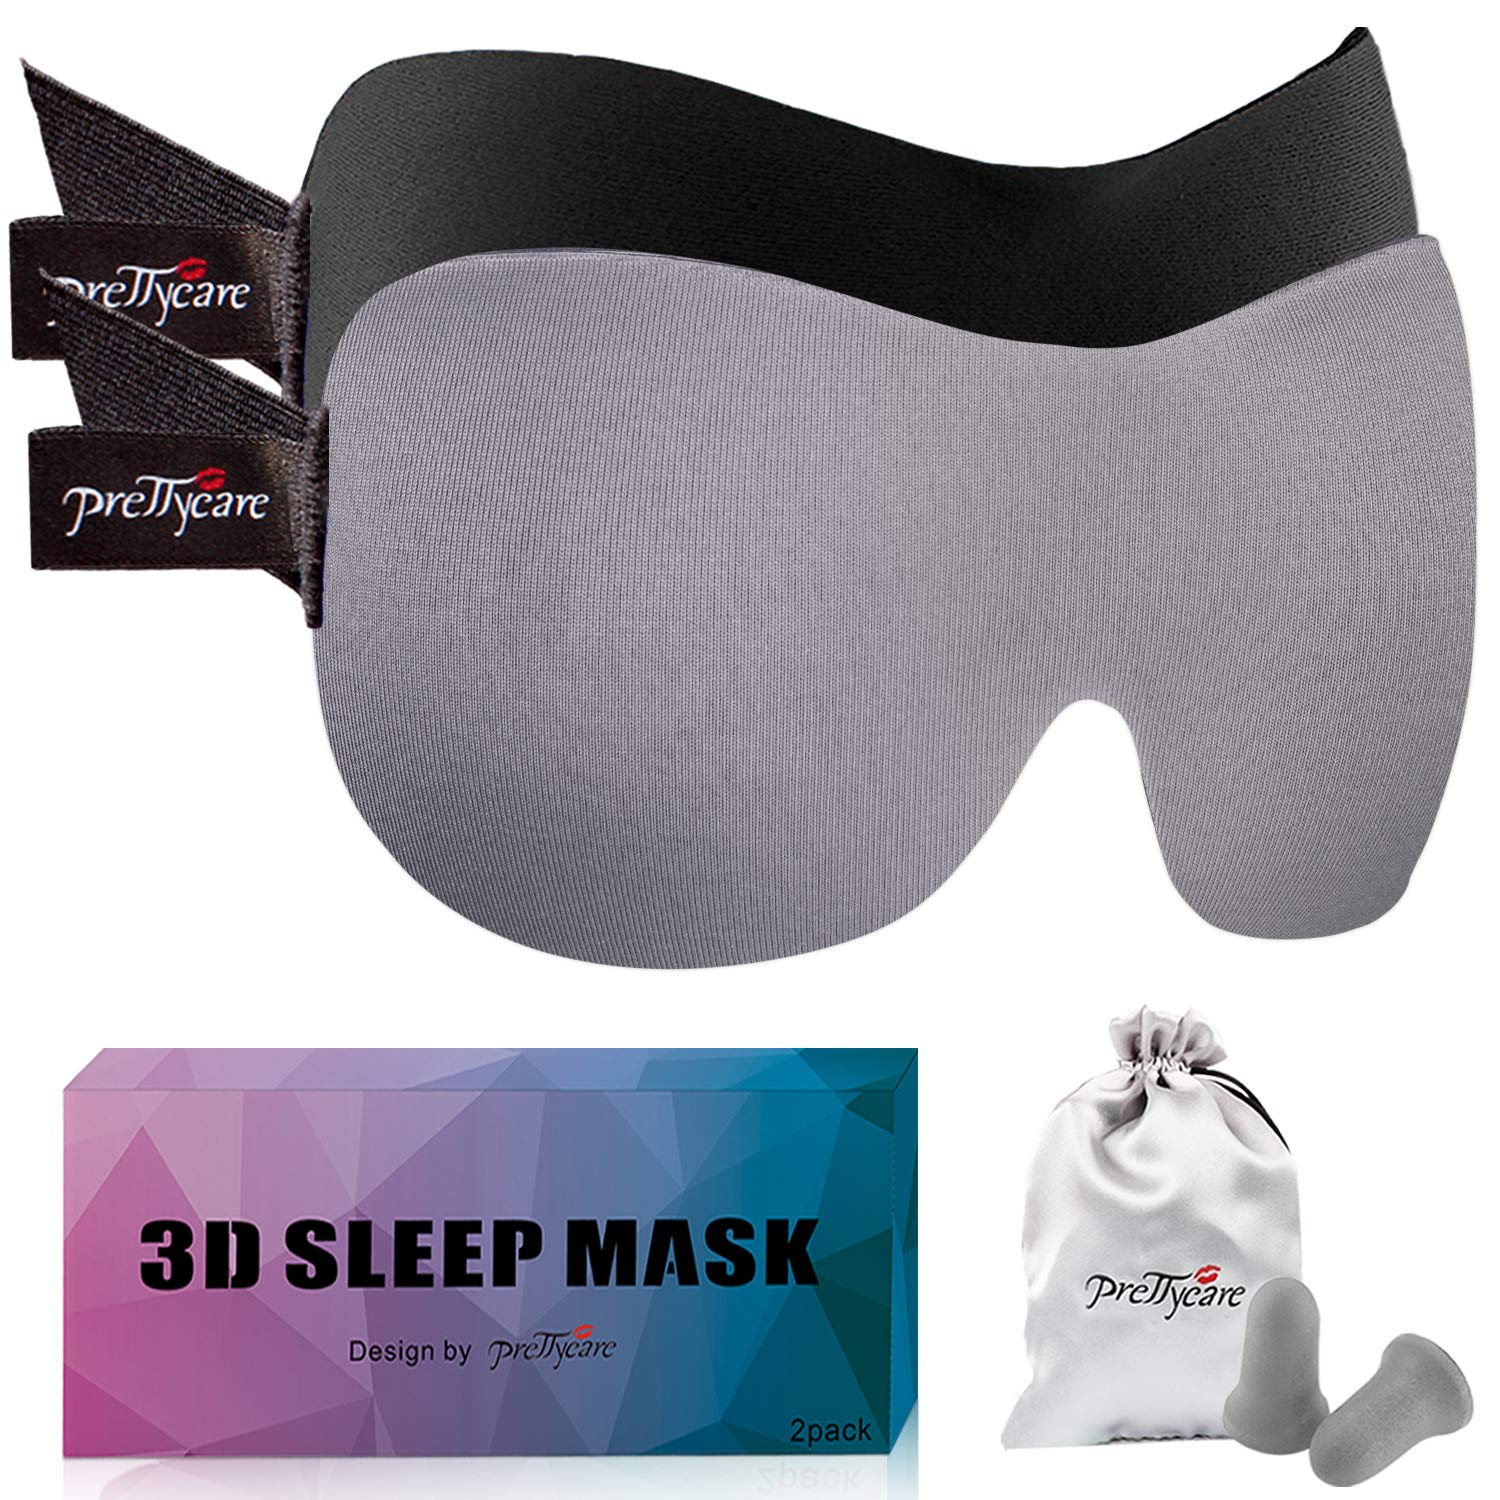 PrettyCare 3D Sleep Mask (Black and Grey with 2 Pack) Eye Mask for Sleeping - Contoured Night Blindfold for Airplane with EarPlugs & Yoga Silk Eye Bags for Travel, Best for Men Women by PrettyCare